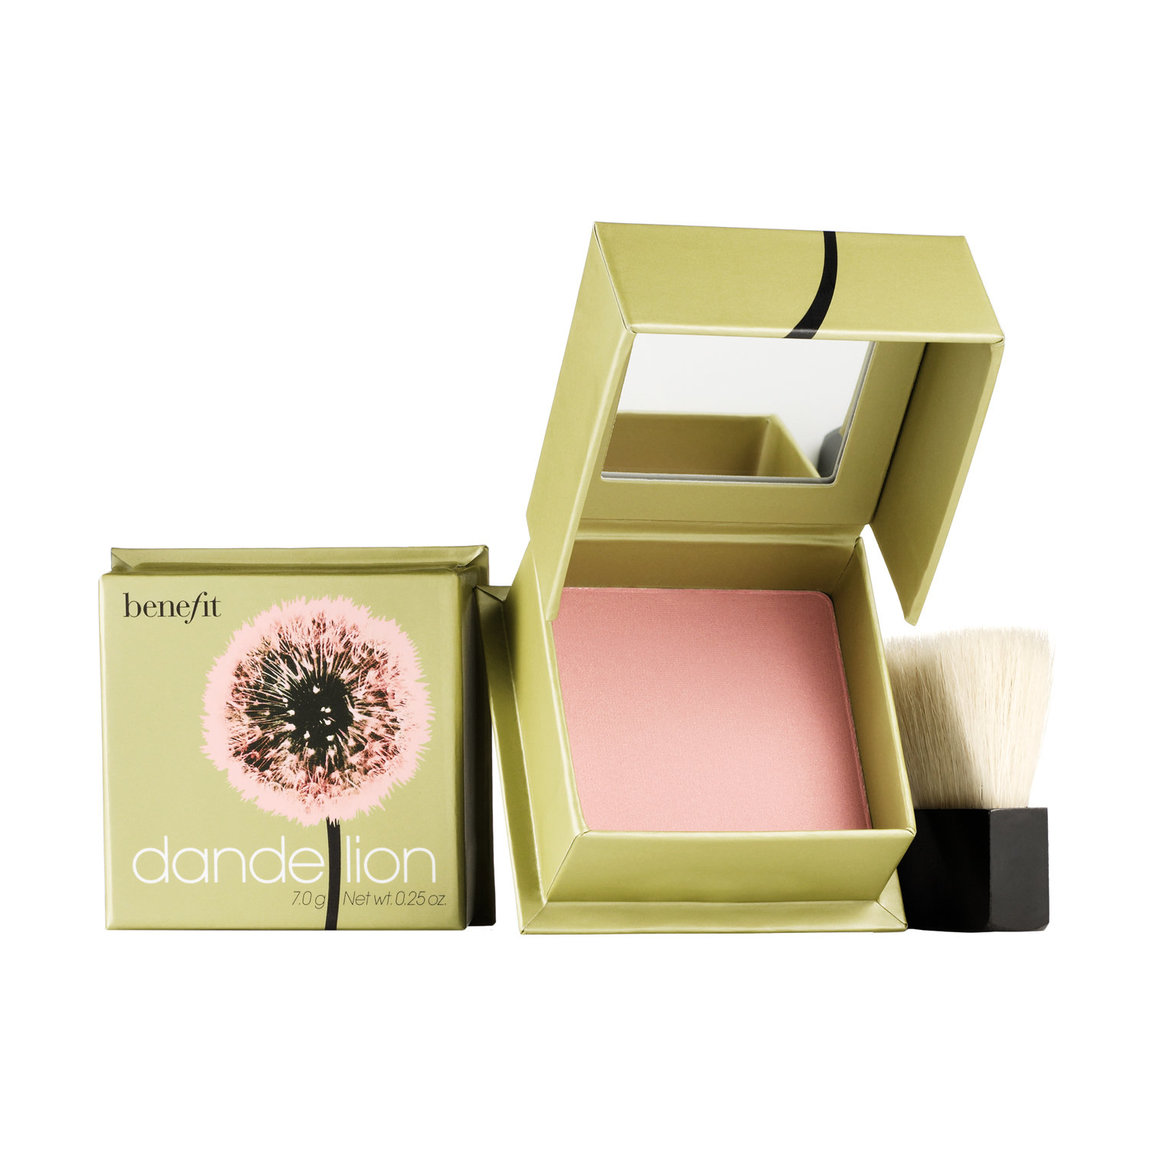 Benefit Cosmetics dandelion Brightening Finishing Face Powder product smear.